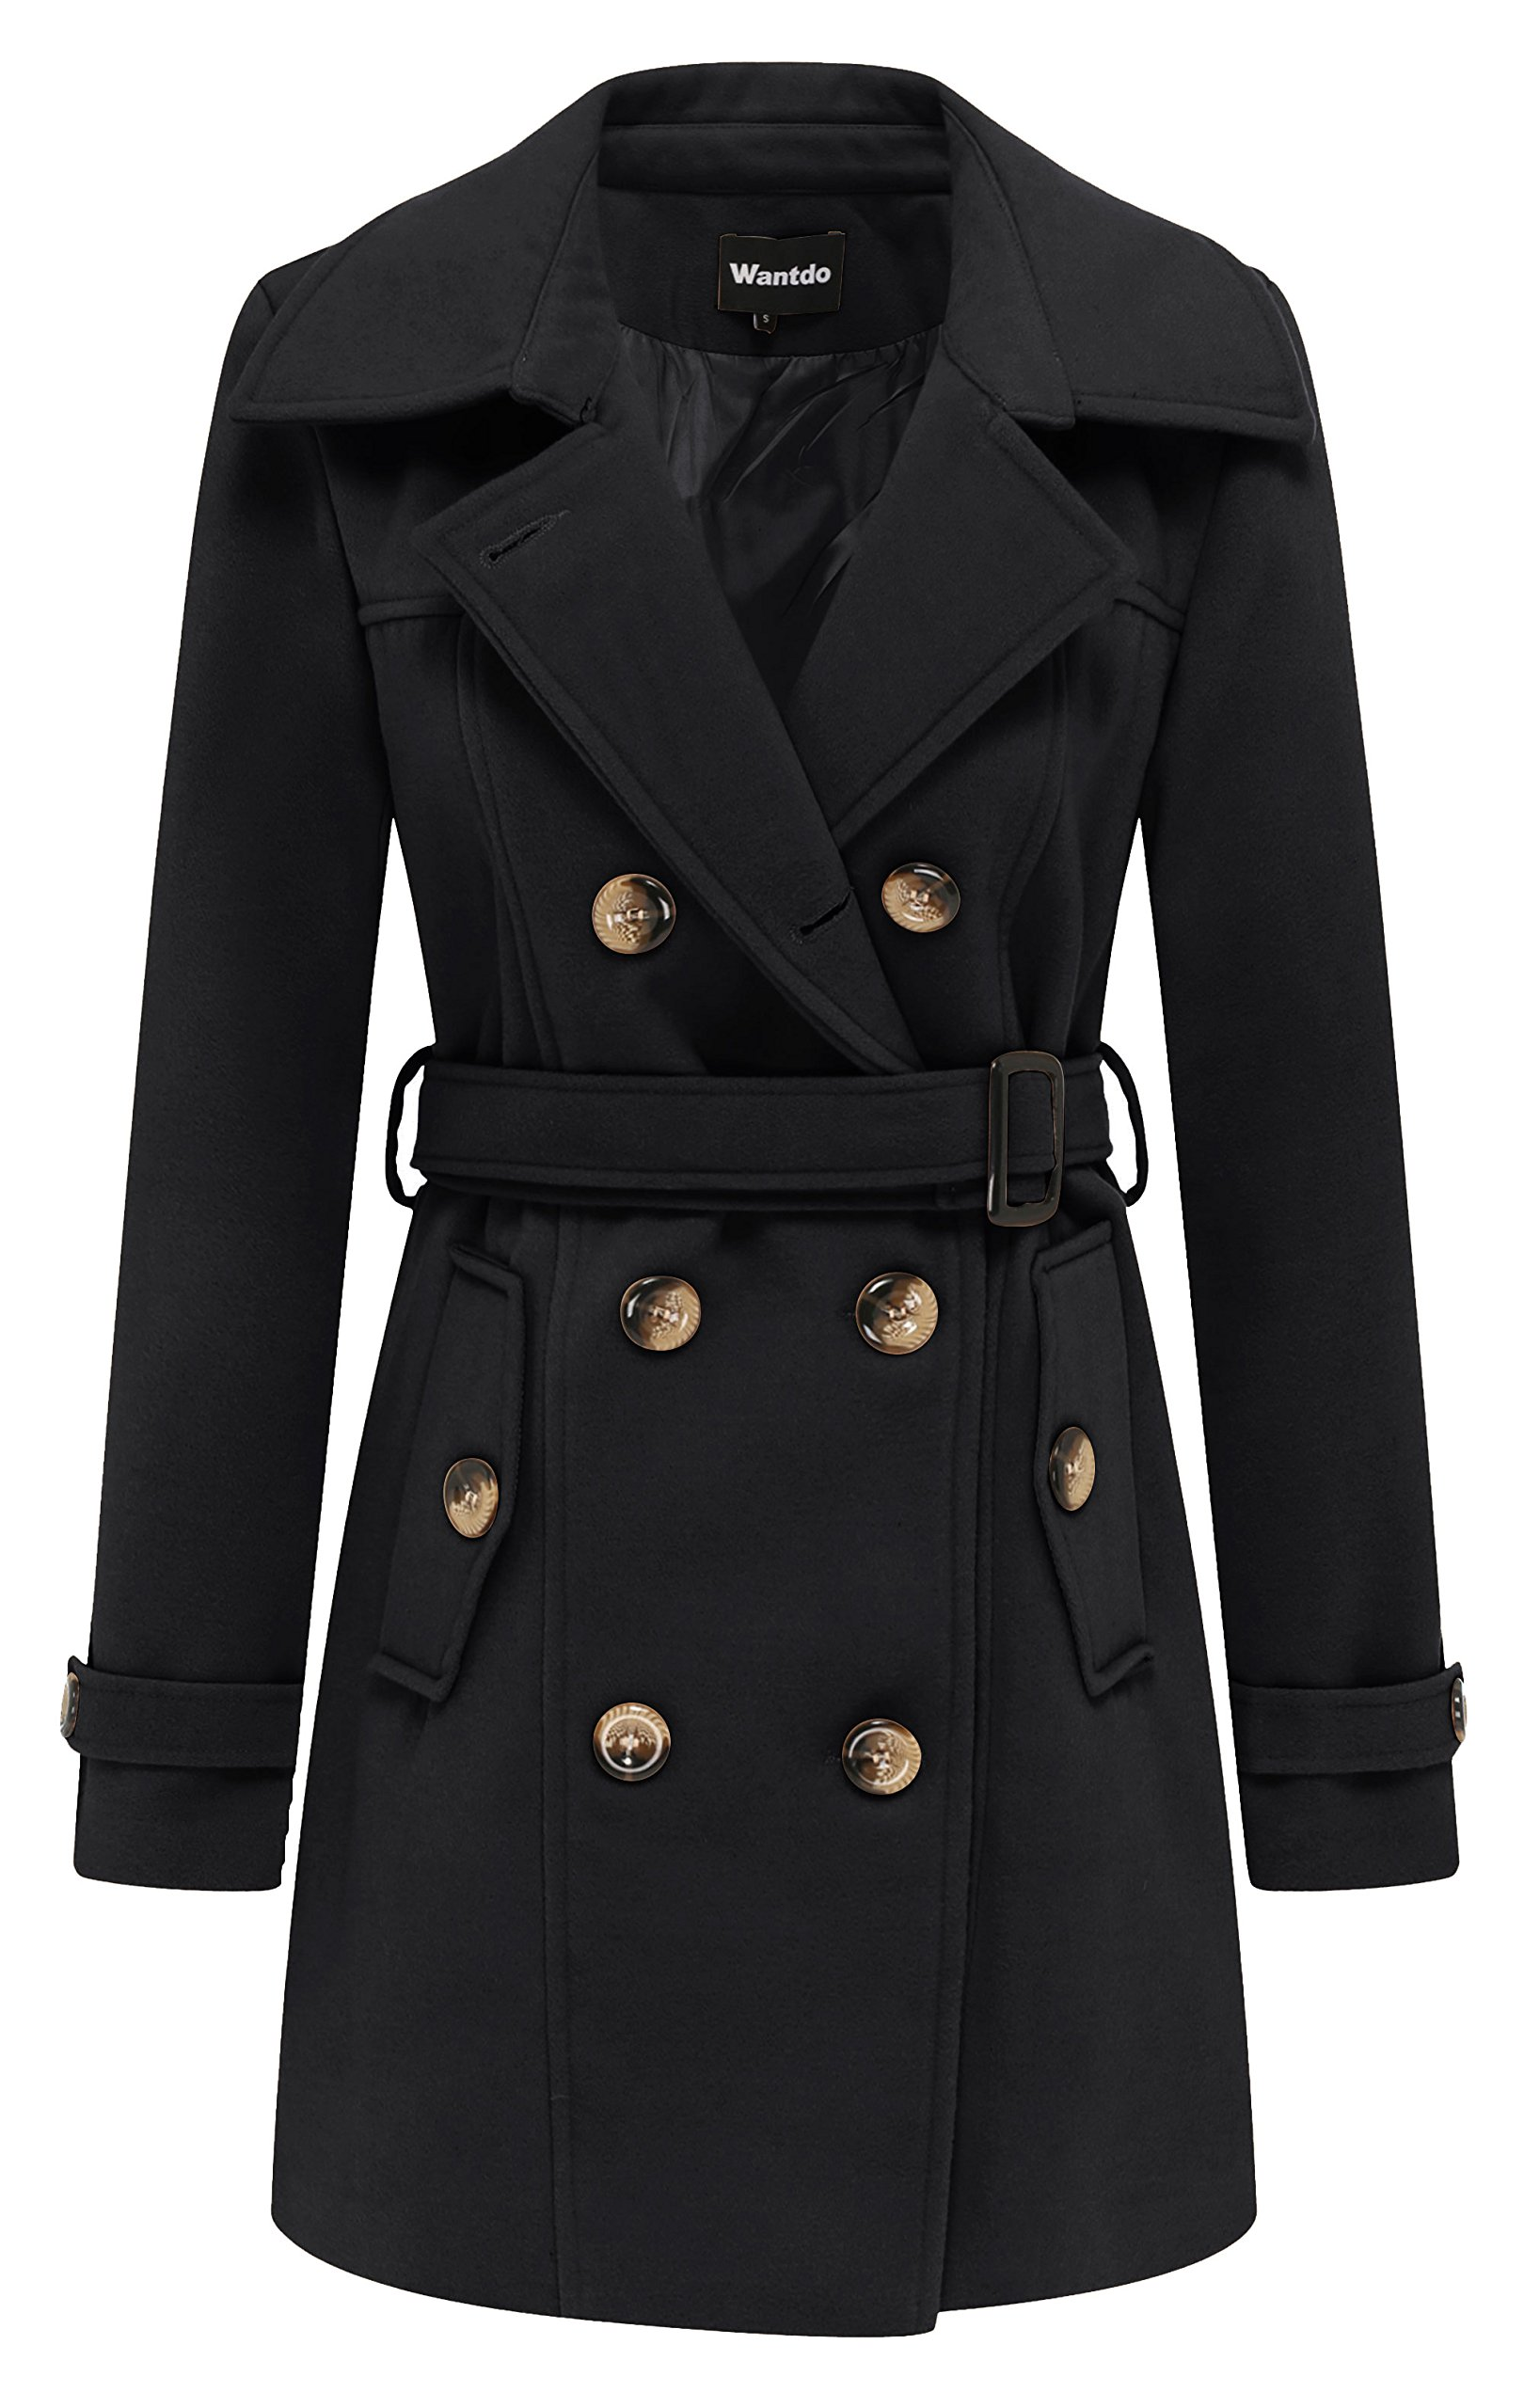 Wantdo Women's Double Breasted Pea Coat with Belt US Small Black